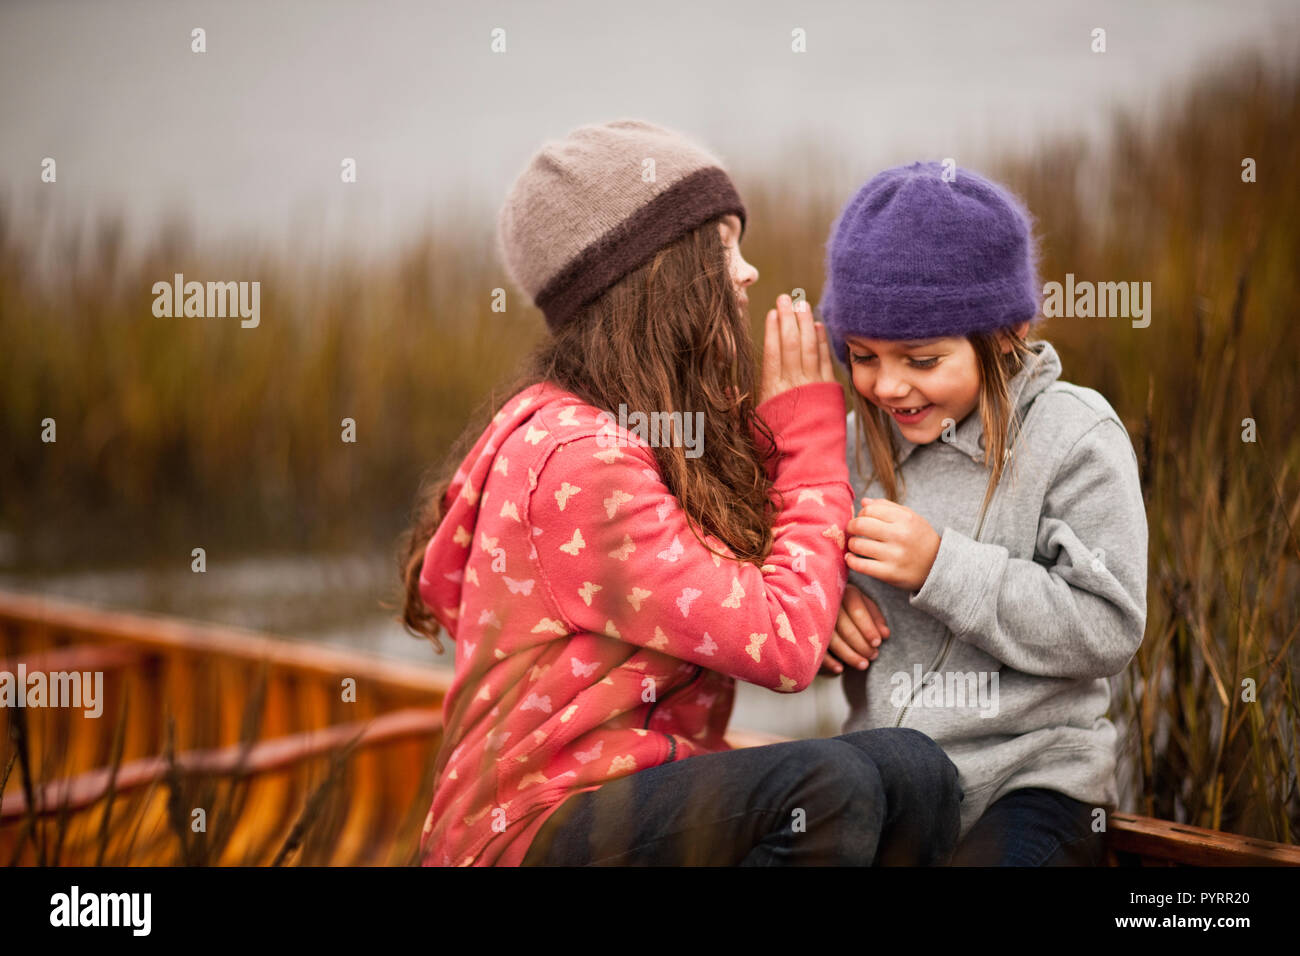 Two sisters tell secrets and laugh as they sit together in a wooden canoe among reeds reeds on a lakeshore. - Stock Image